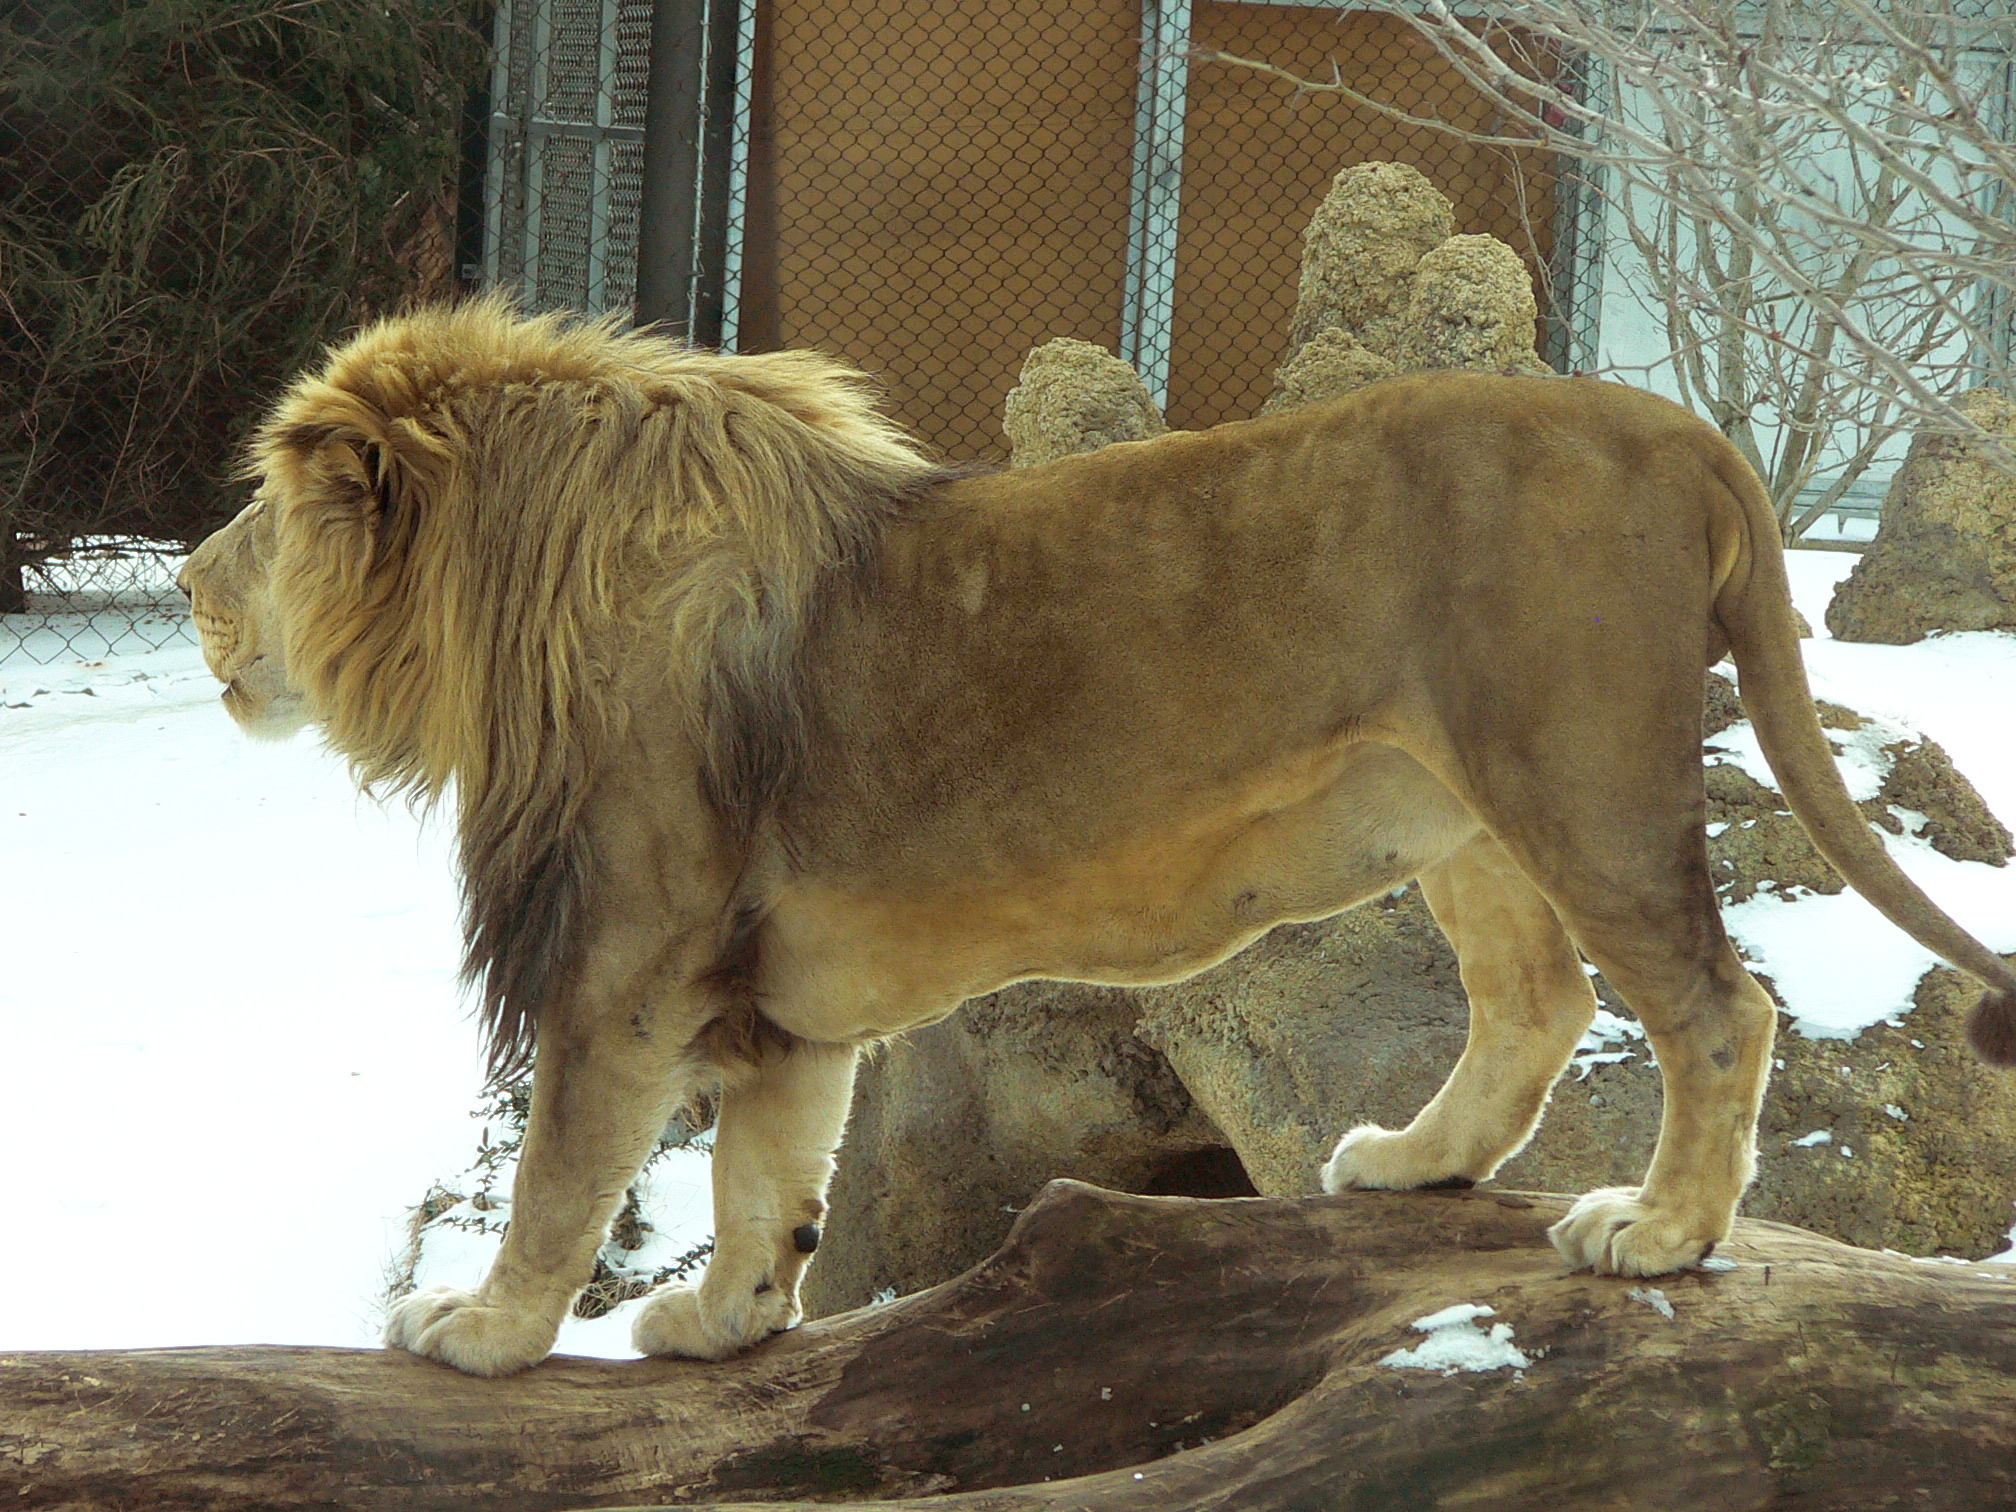 http://upload.wikimedia.org/wikipedia/commons/9/9e/MP-panthera_leo_krugeri_8.jpg